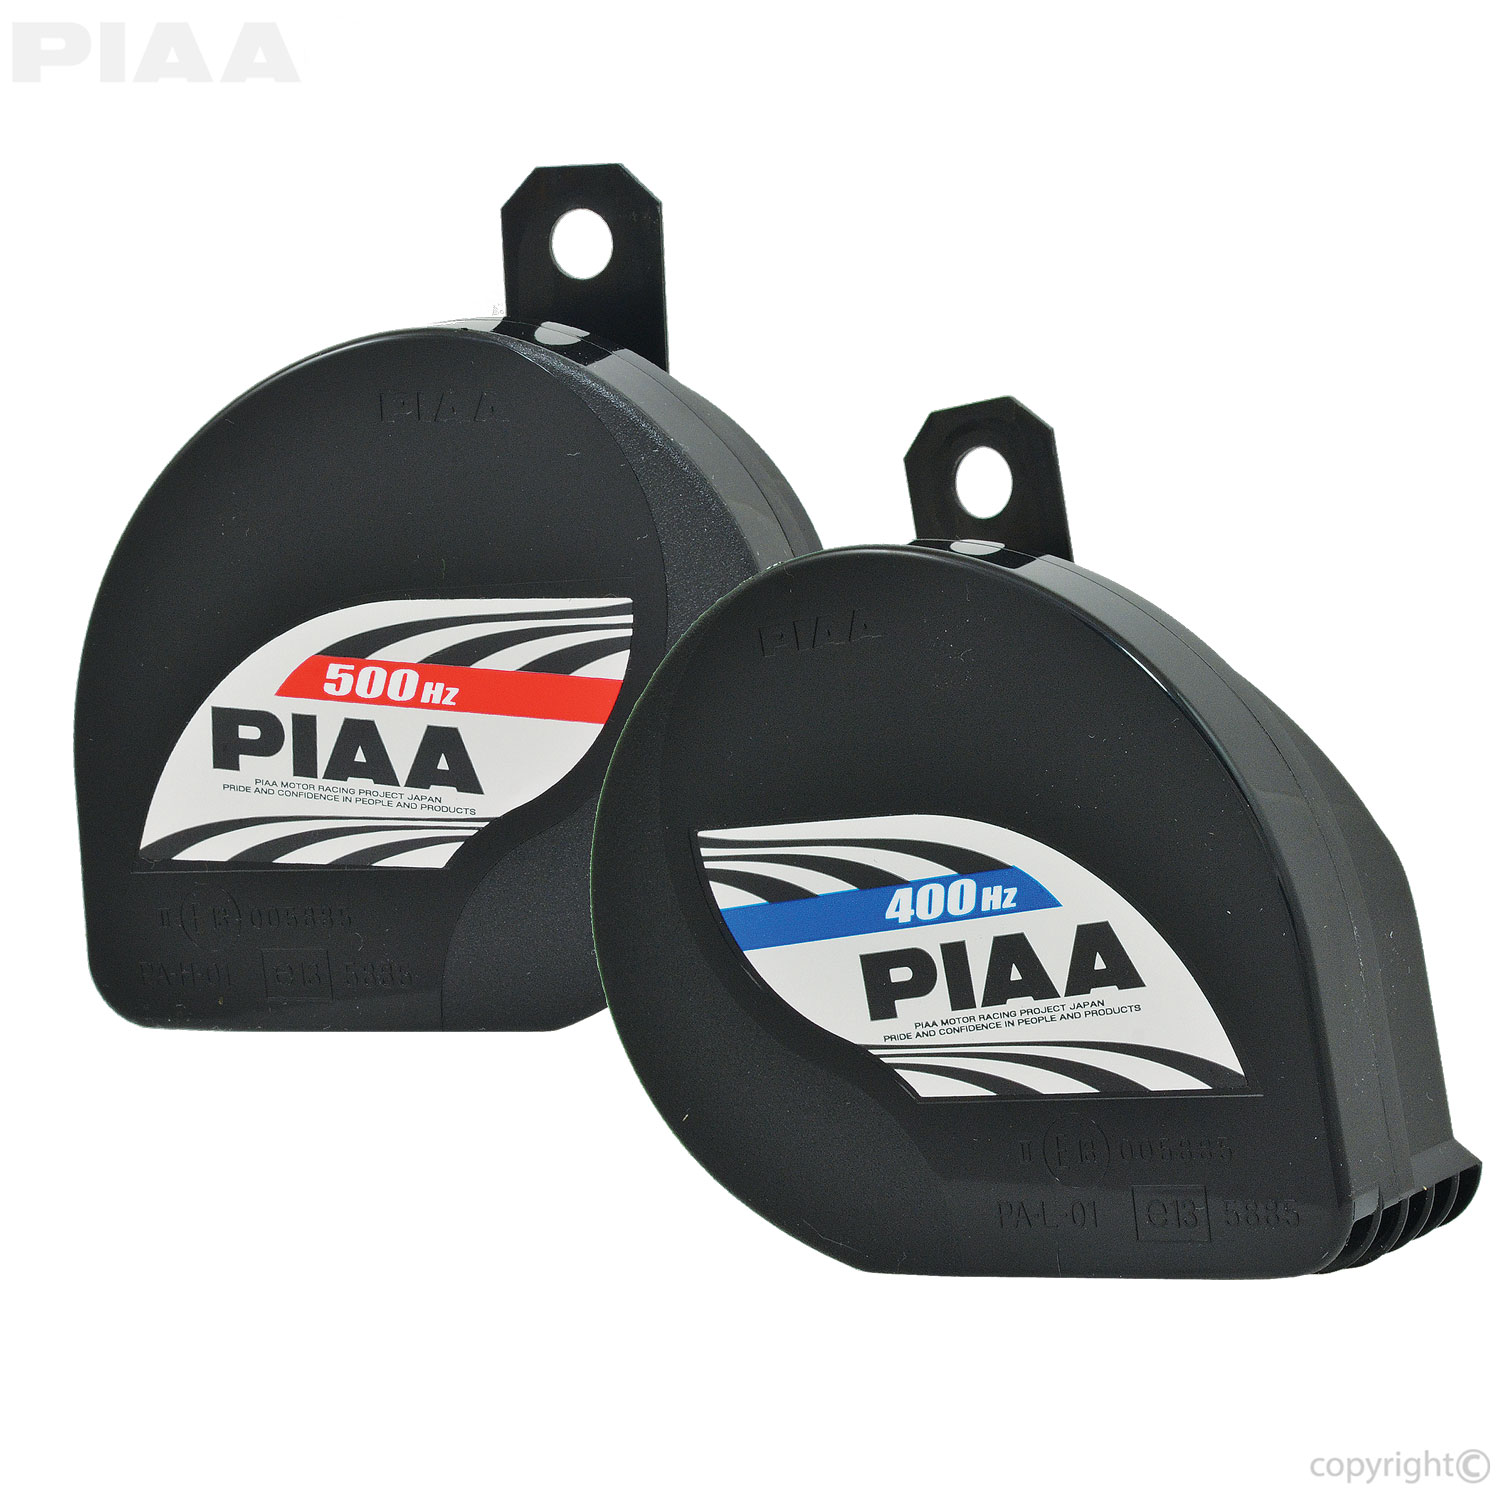 Piaa Fog Lights Wiring Diagram Solutions Harness Horn Data Diagrams